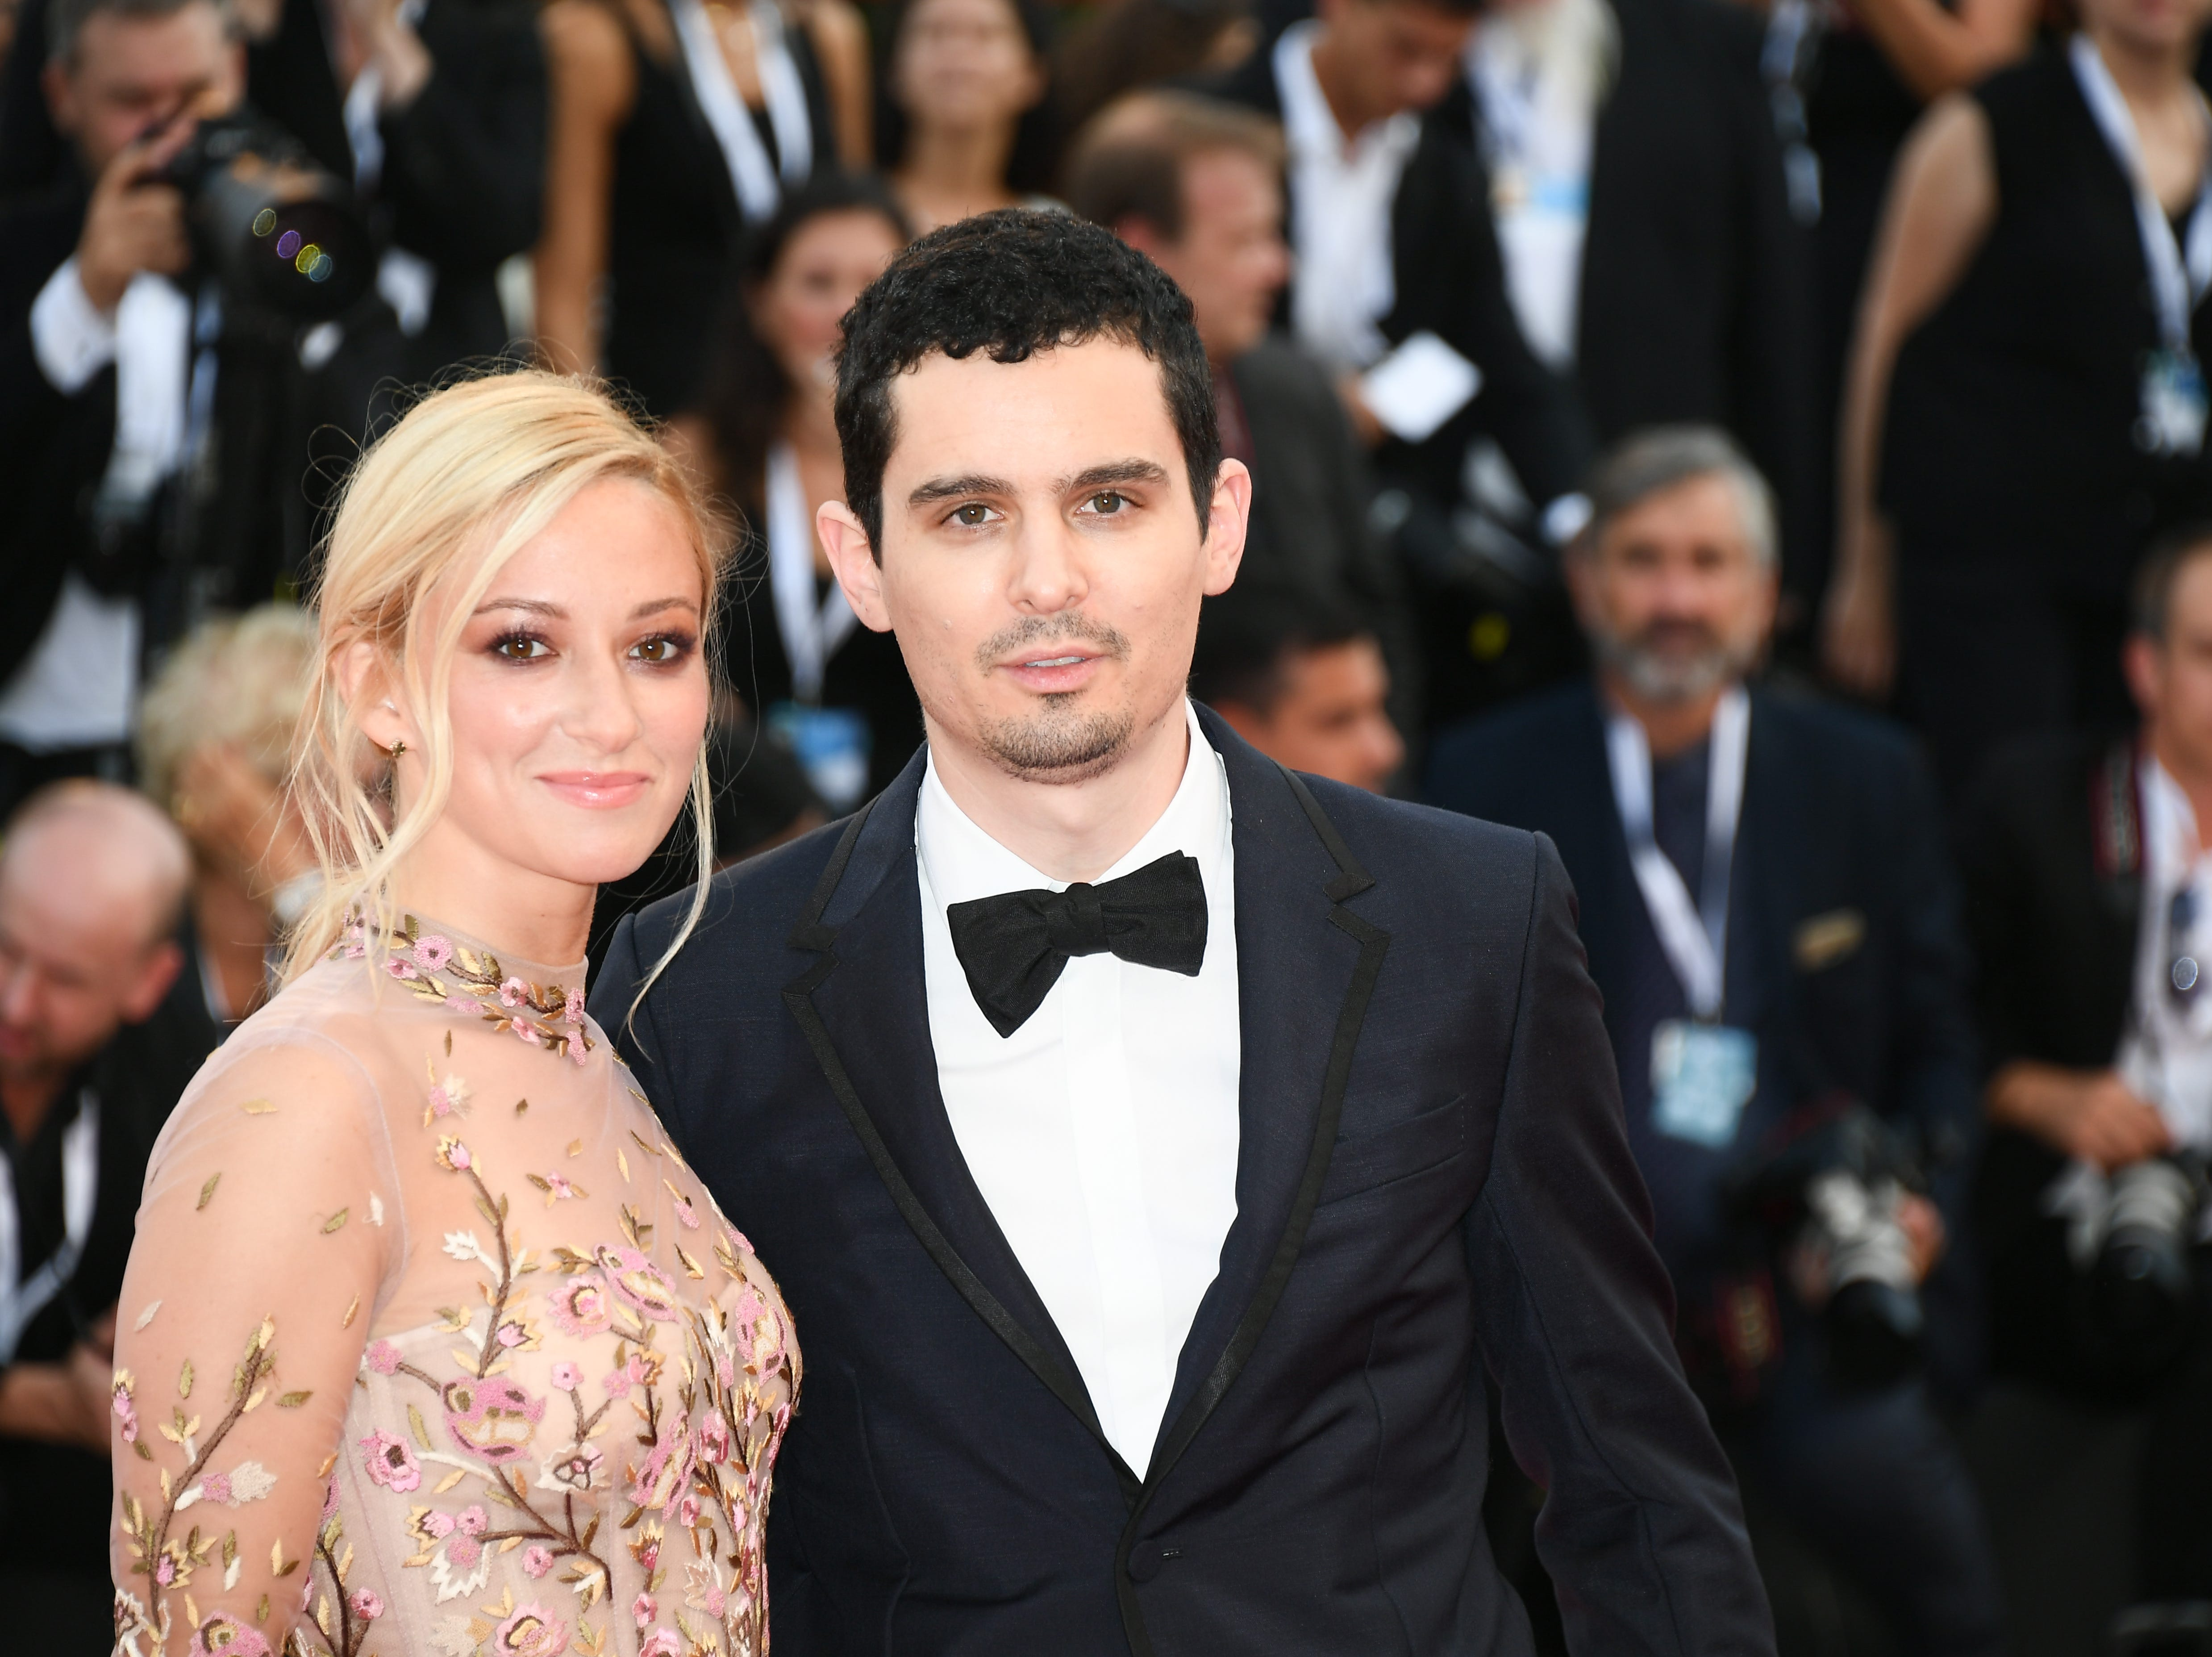 VENICE, ITALY - AUGUST 29:  Olivia Hamilton and Damien Chazelle walks the red carpet ahead of the opening ceremony and the 'First Man' screening during the 75th Venice Film Festival at Sala Grande on August 29, 2018 in Venice, Italy.  (Photo by Dominique Charriau/WireImage) ORG XMIT: 775200609 ORIG FILE ID: 1025072442